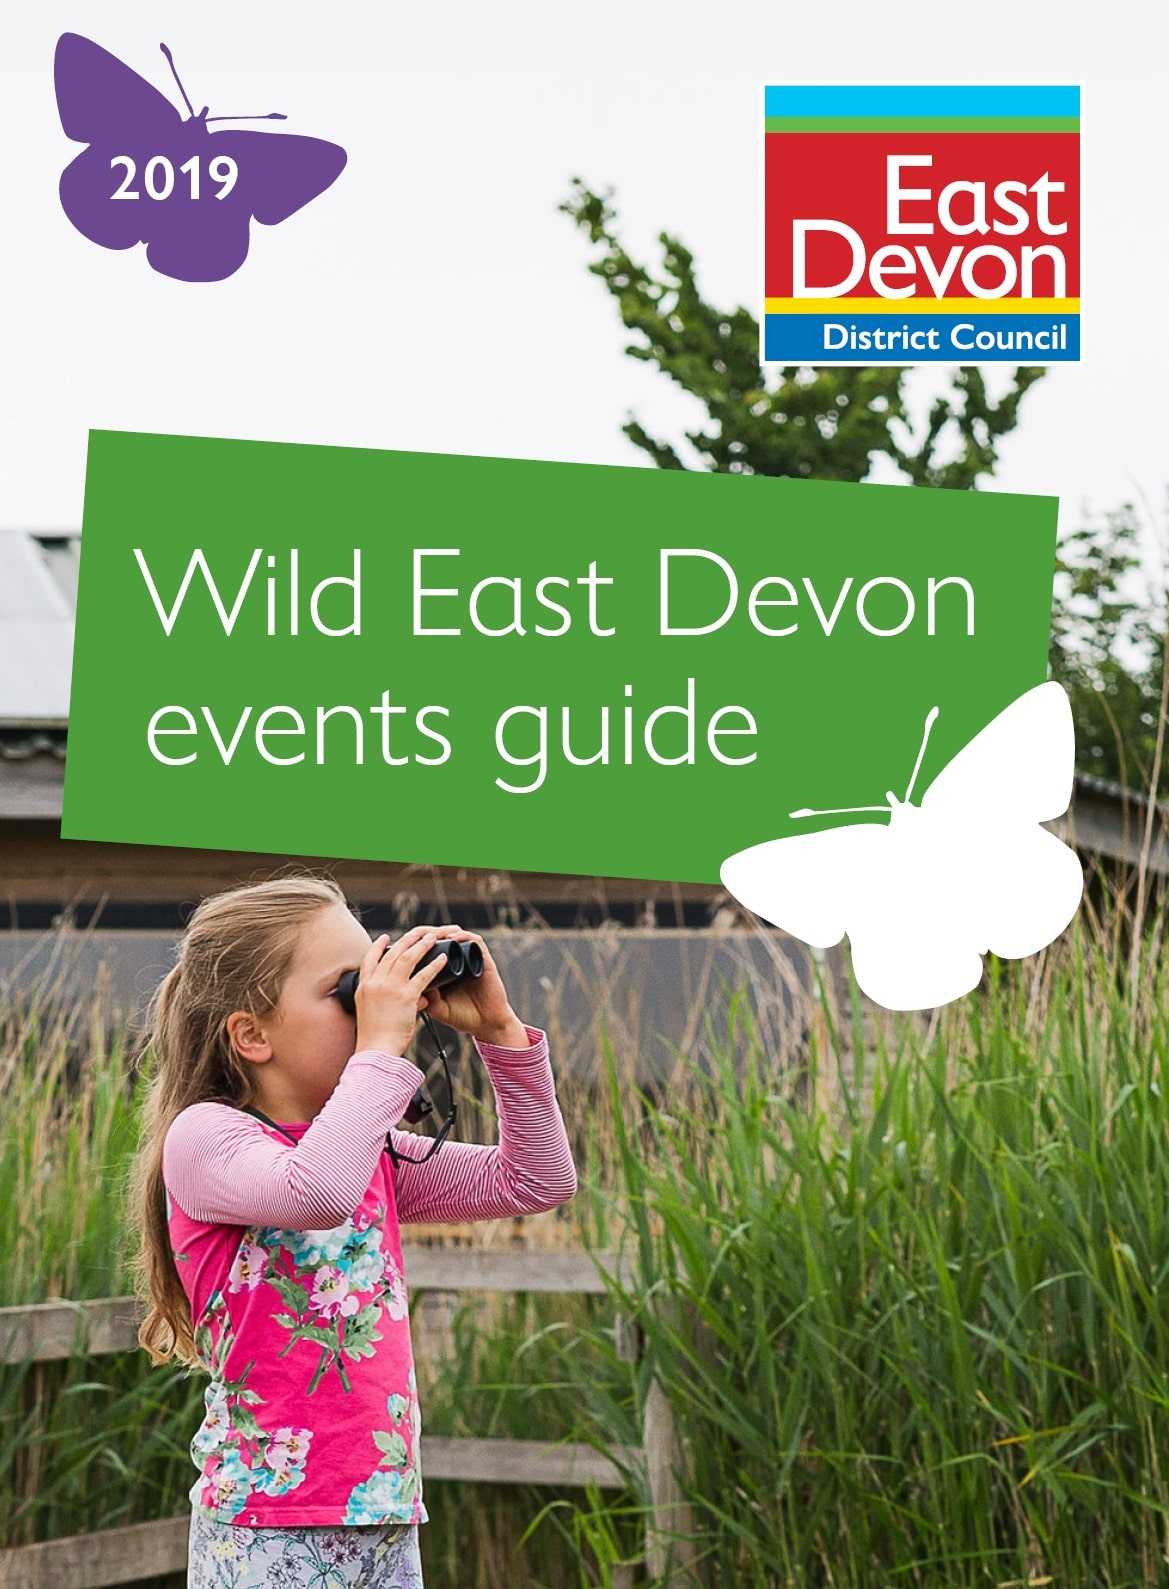 Image of the front page of the East Devon District Council Wild East Devon events guide